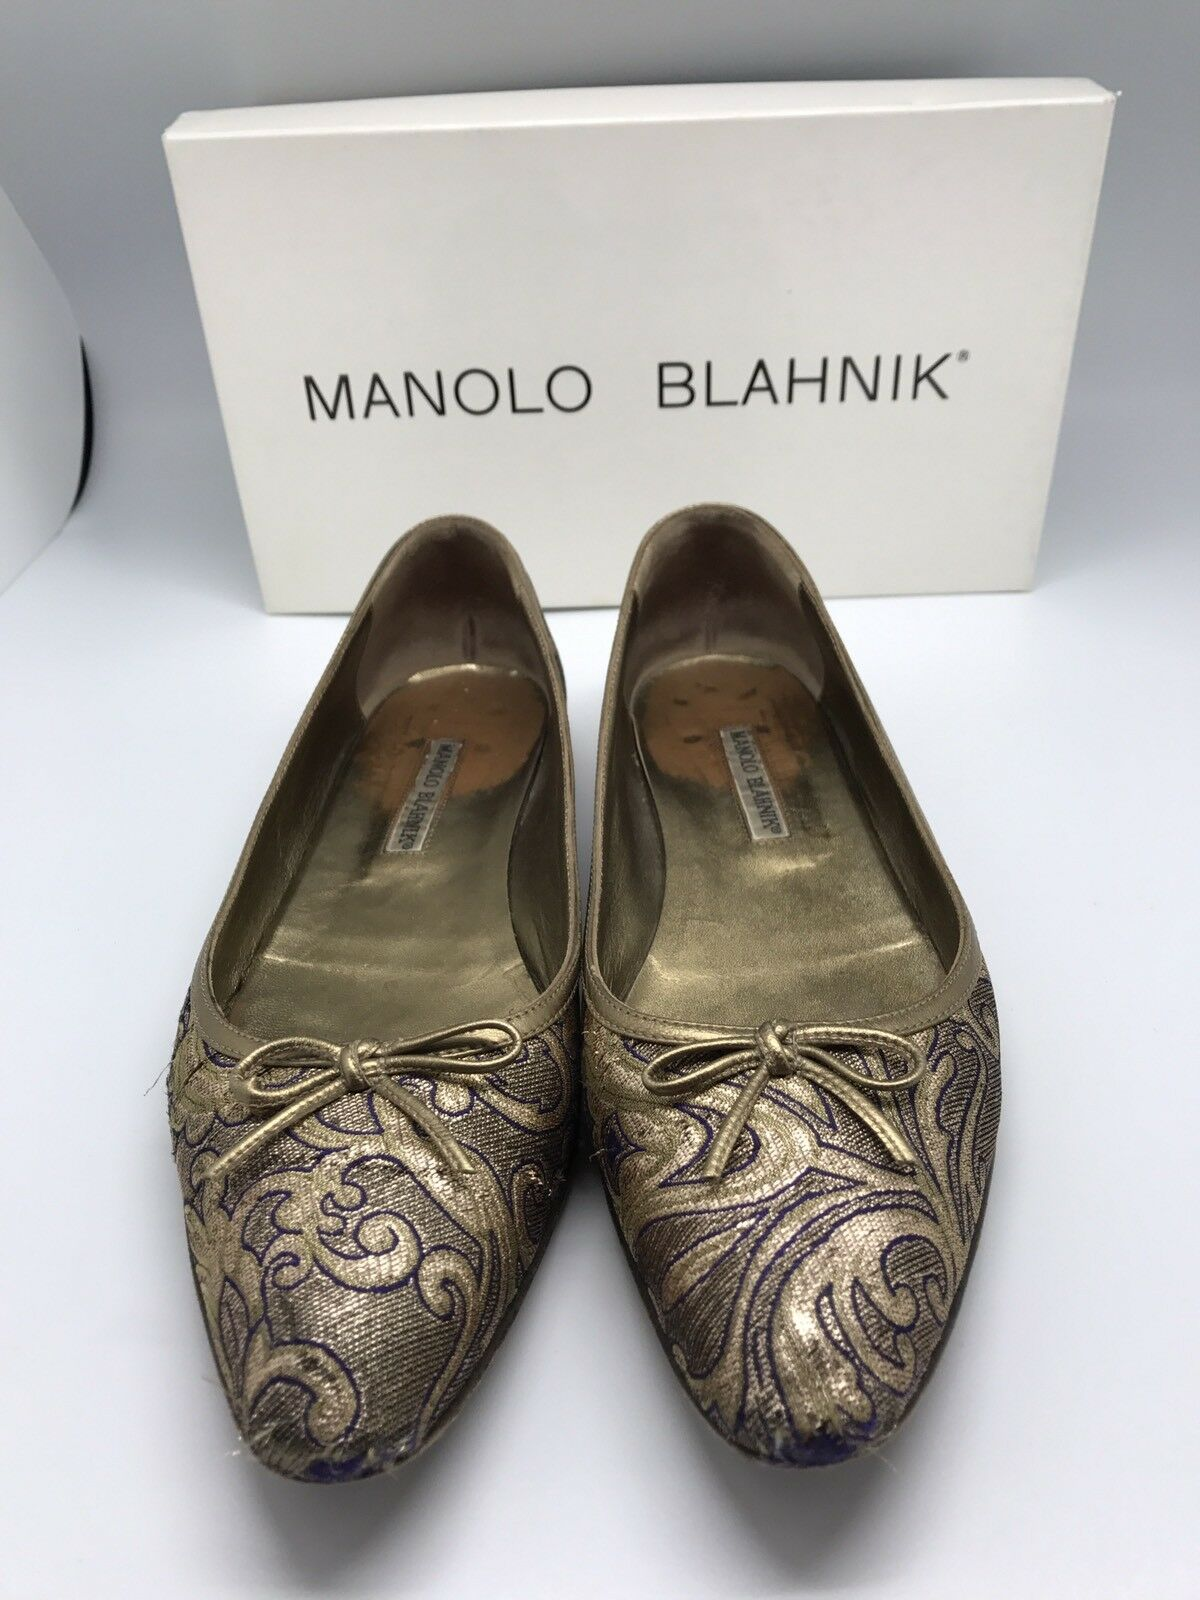 MANOLO BLAHNIK Gold Bronze Ornate EmbroideROT Canvas Bow Flats Größe 38 1/2 8.5